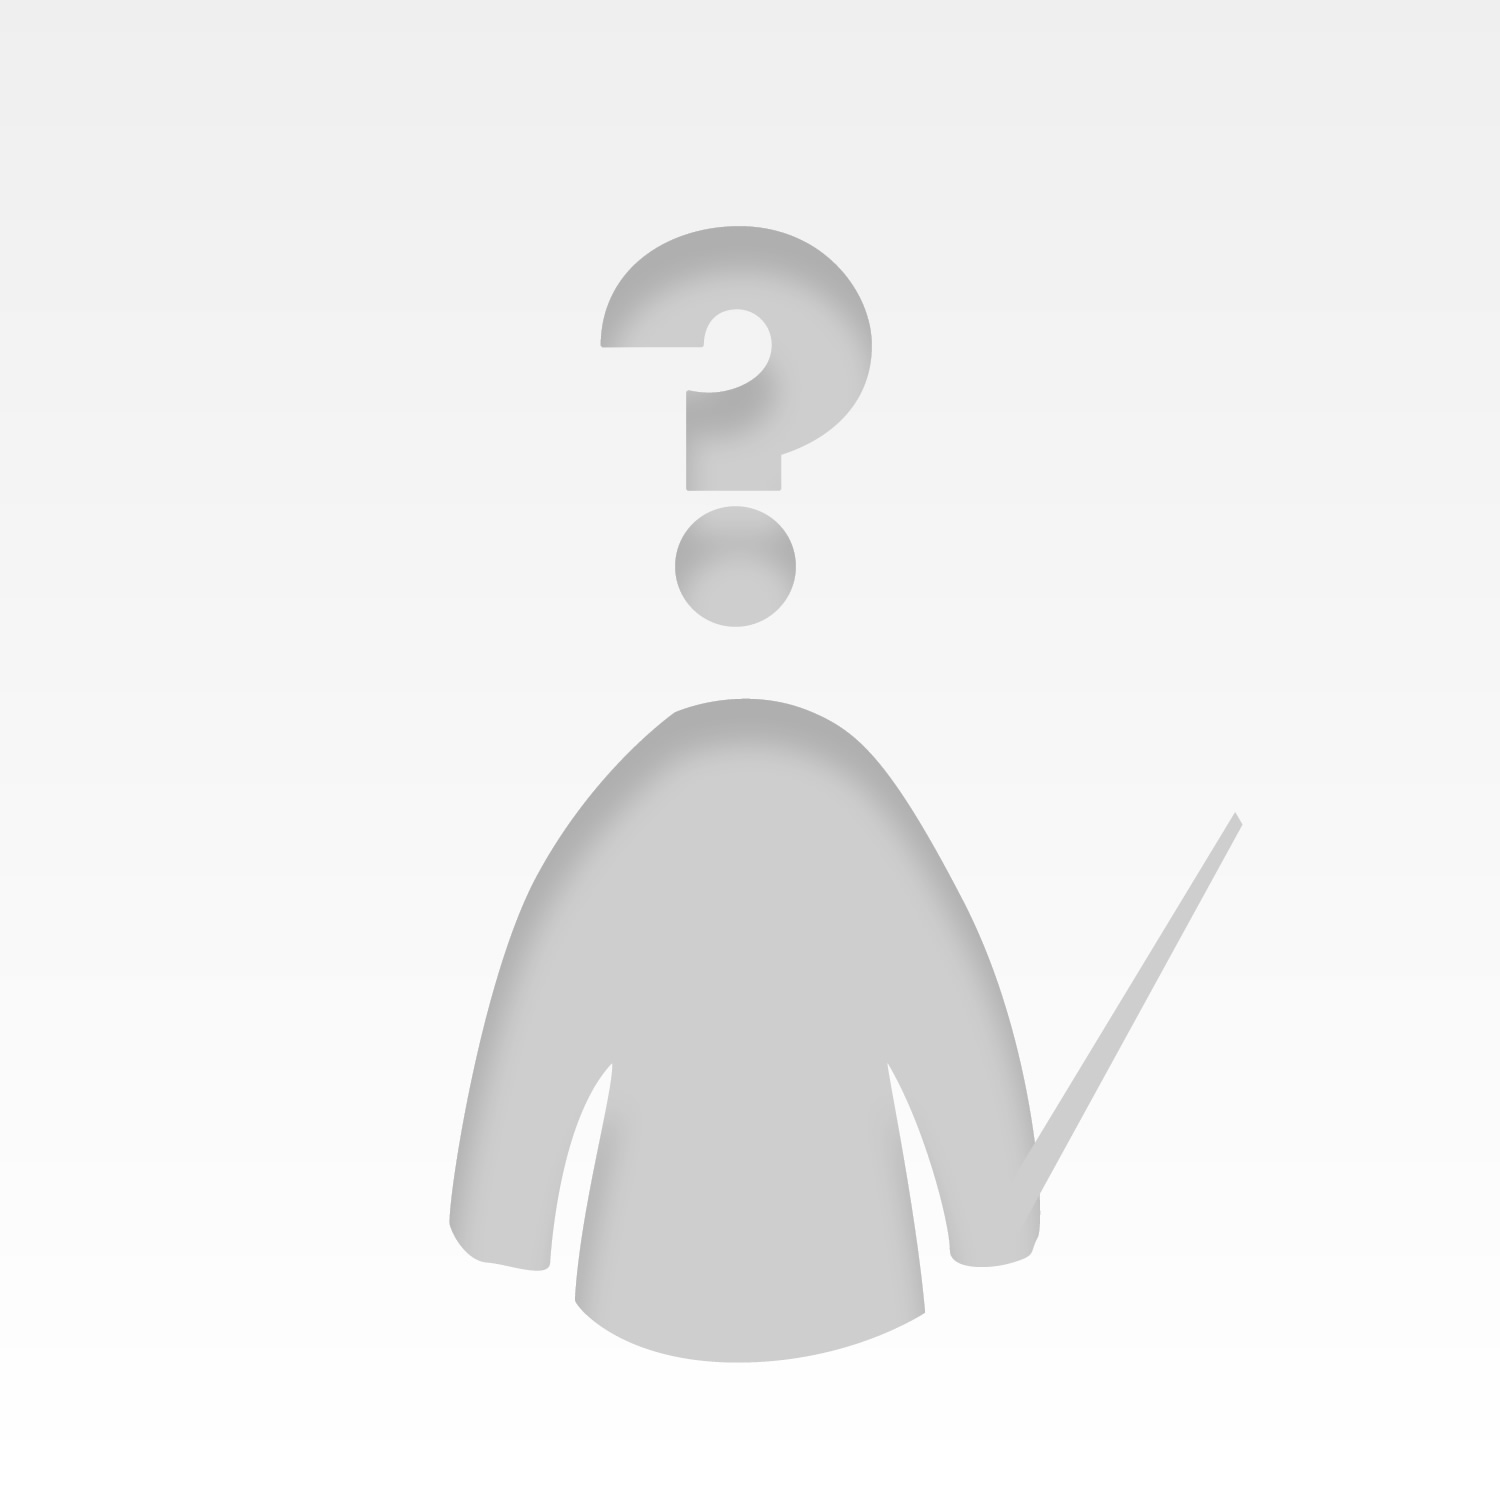 bookproject1\'s avatar